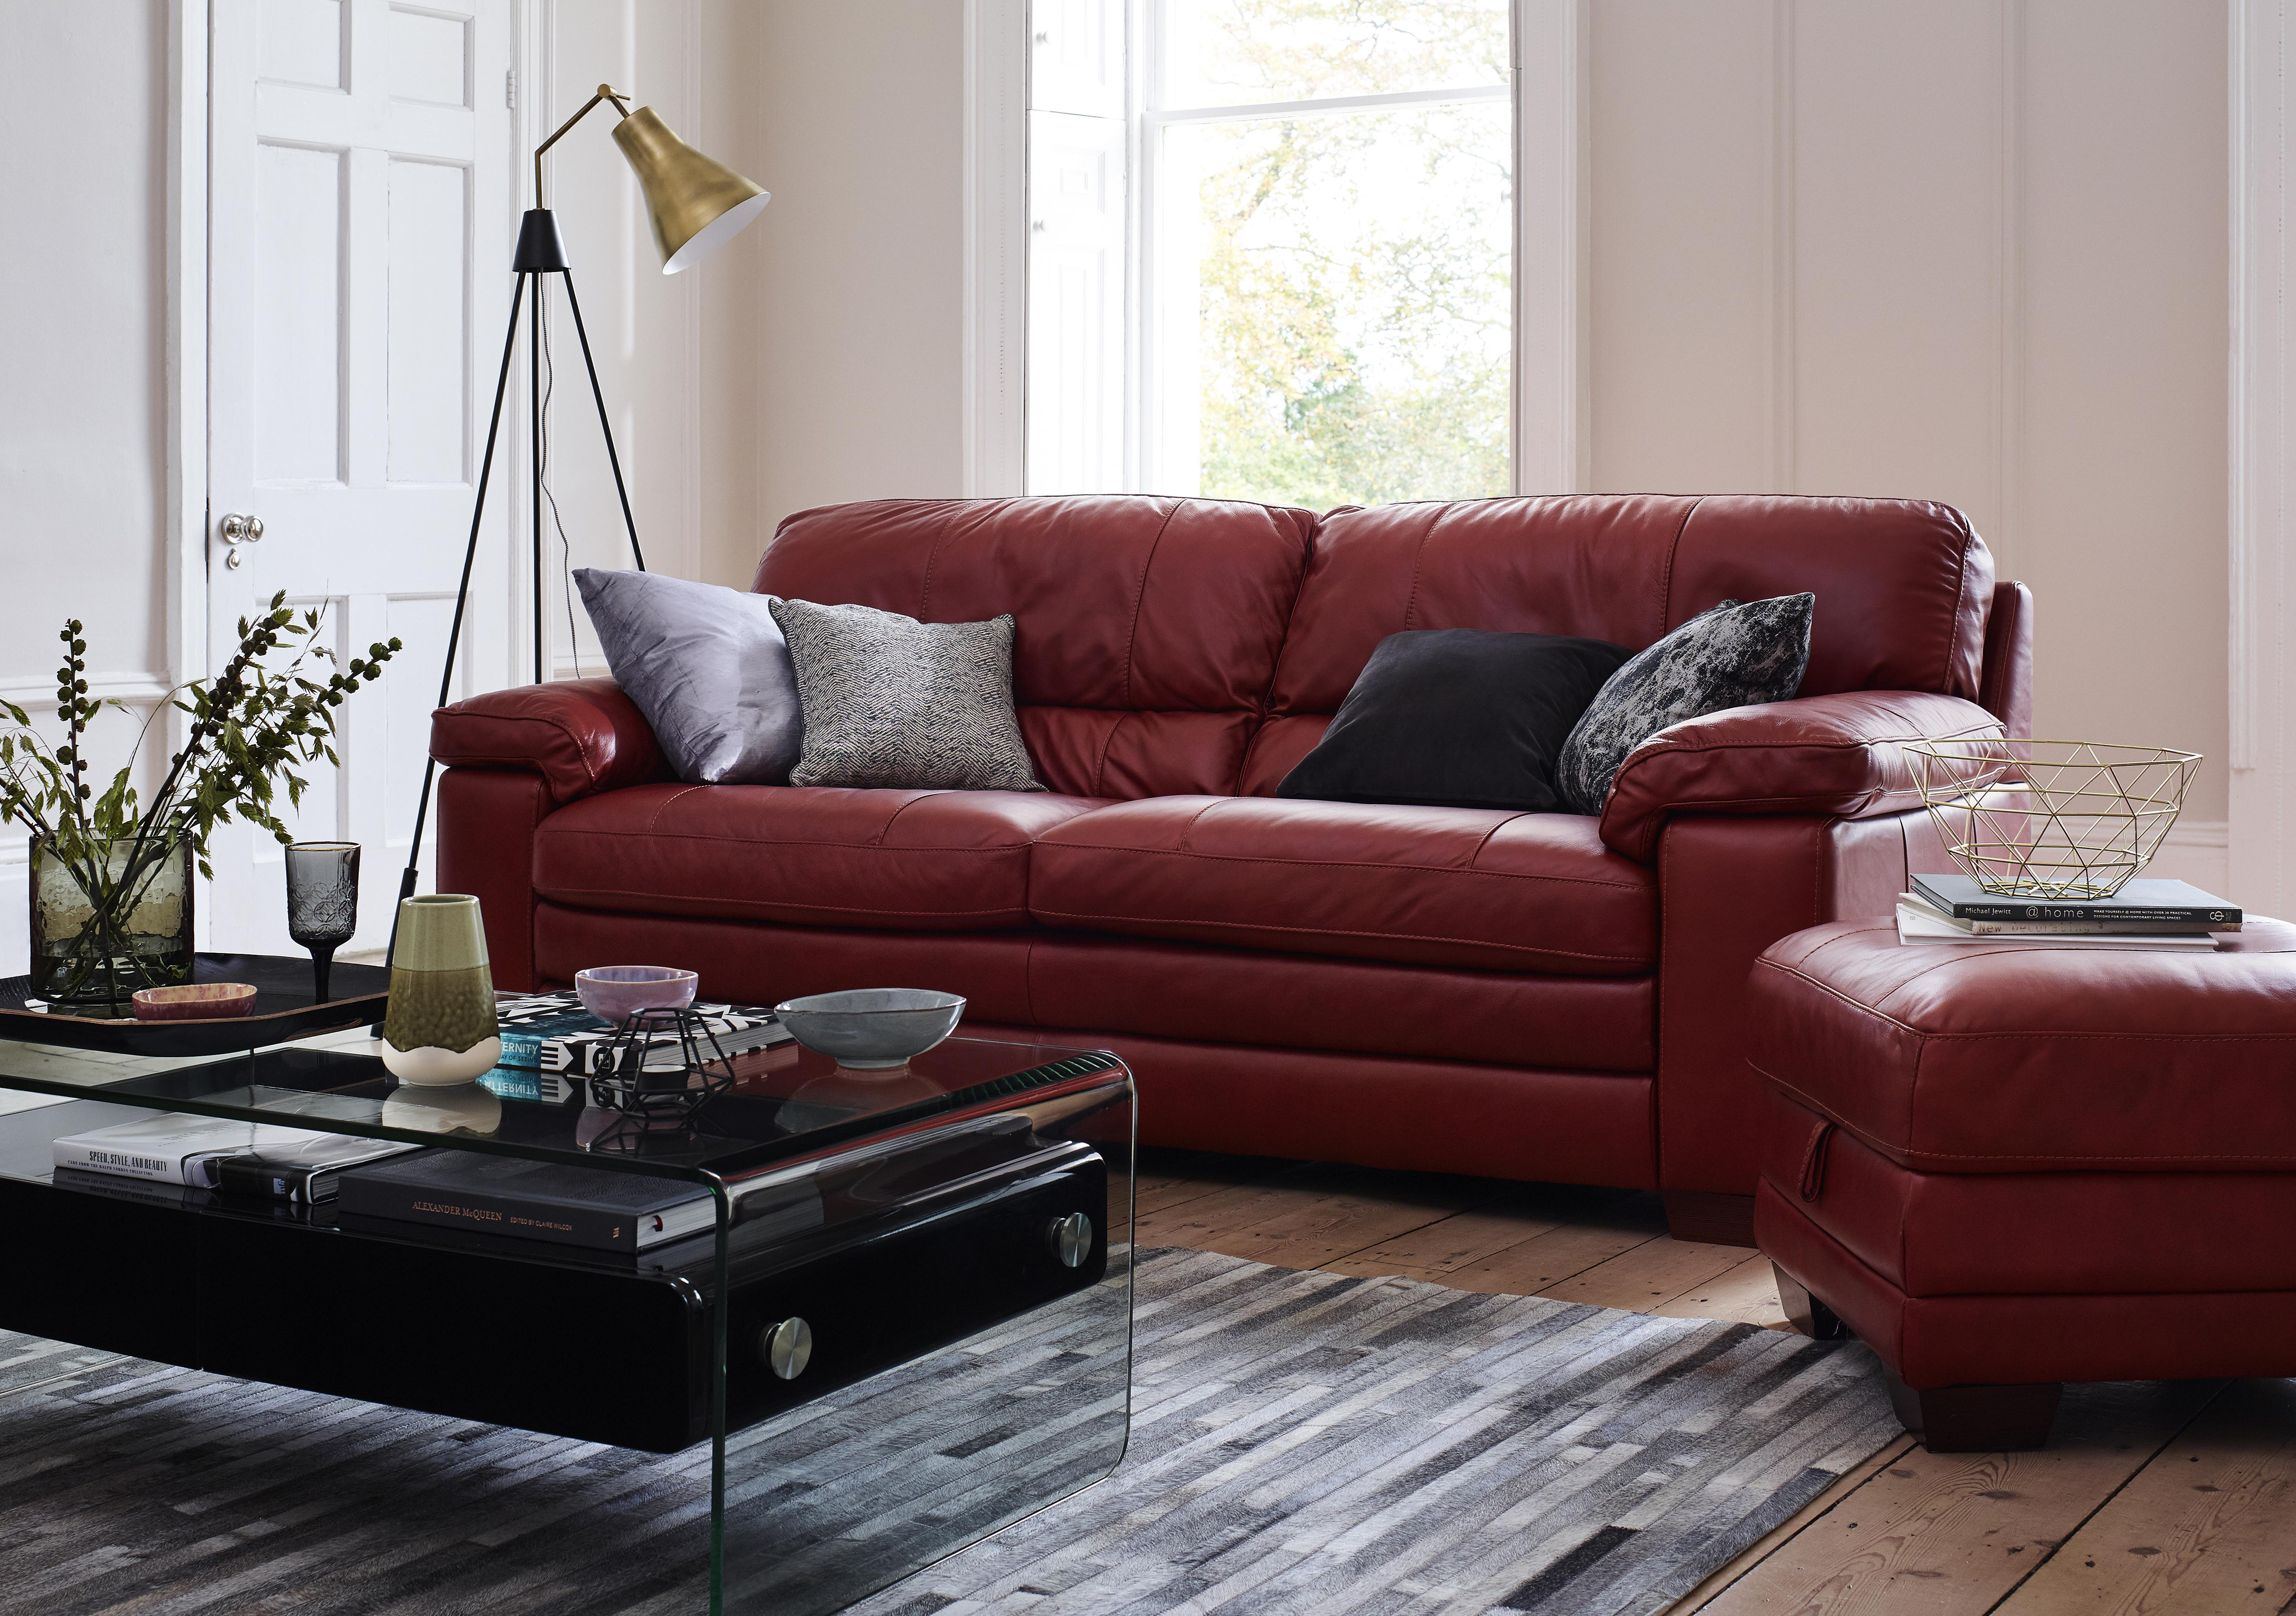 sofasworld showroom who makes the best sectional sofas world of leather furniture village